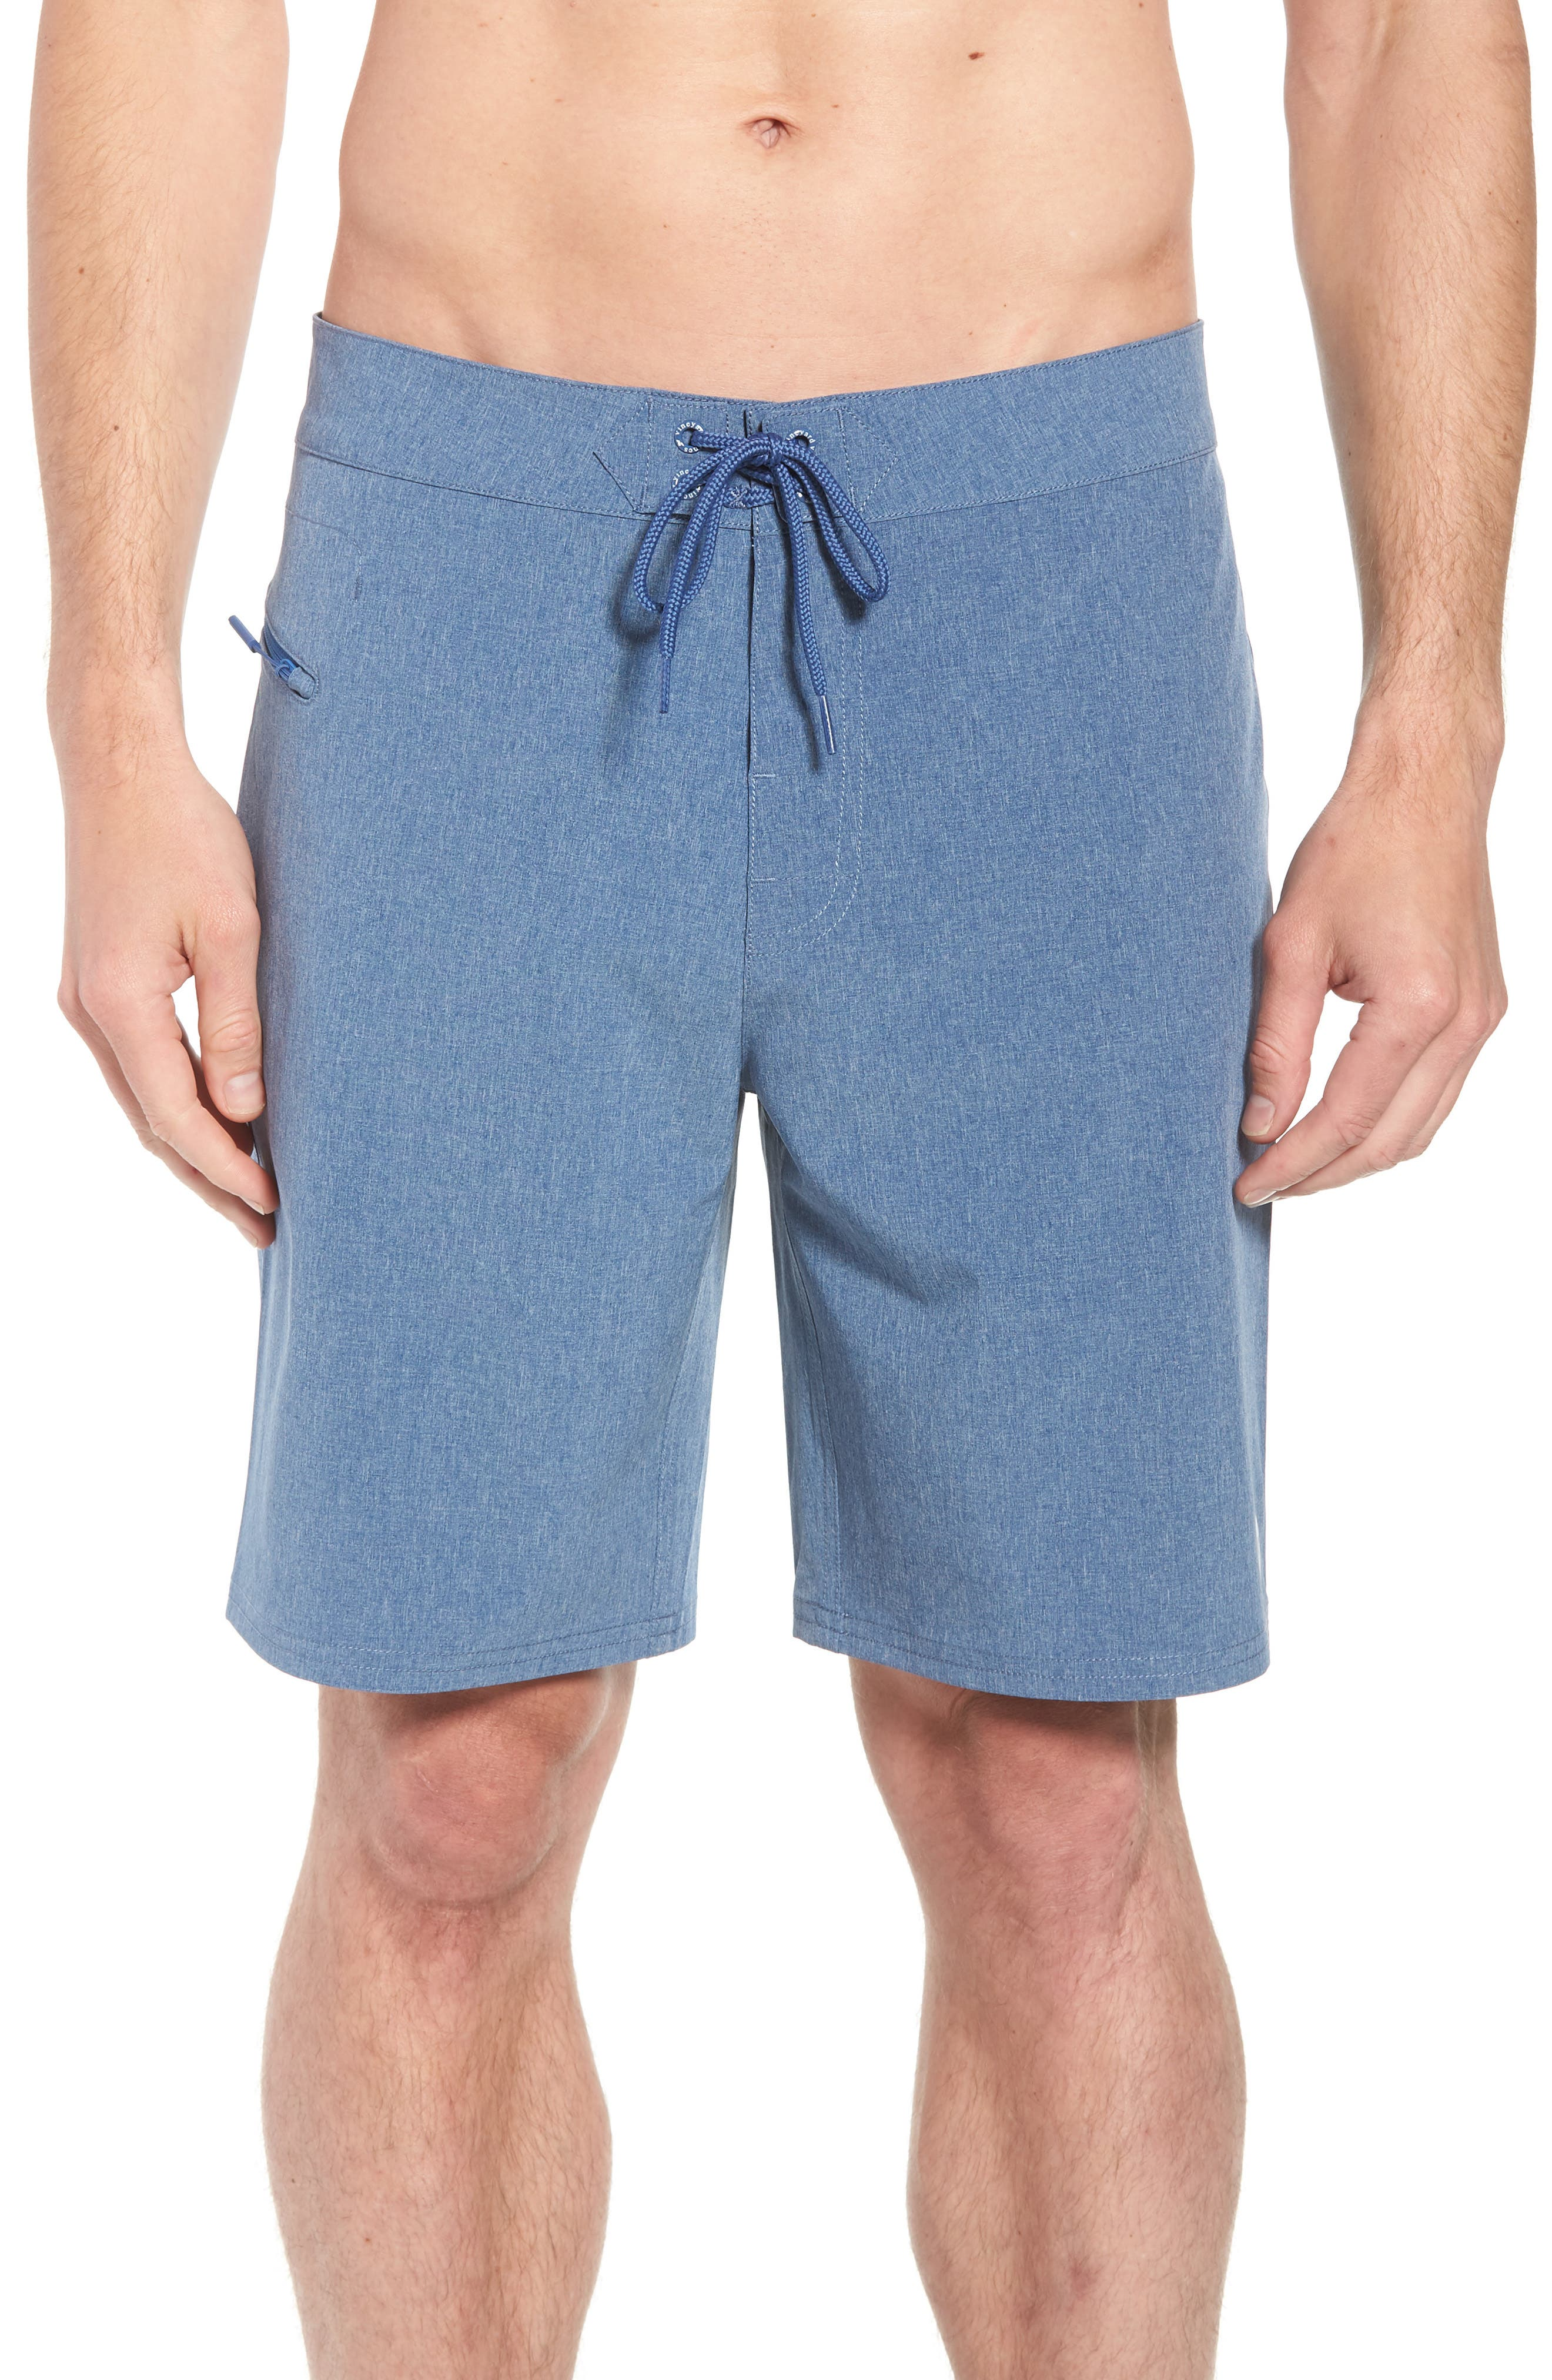 Heather Stretch Board Shorts,                             Main thumbnail 1, color,